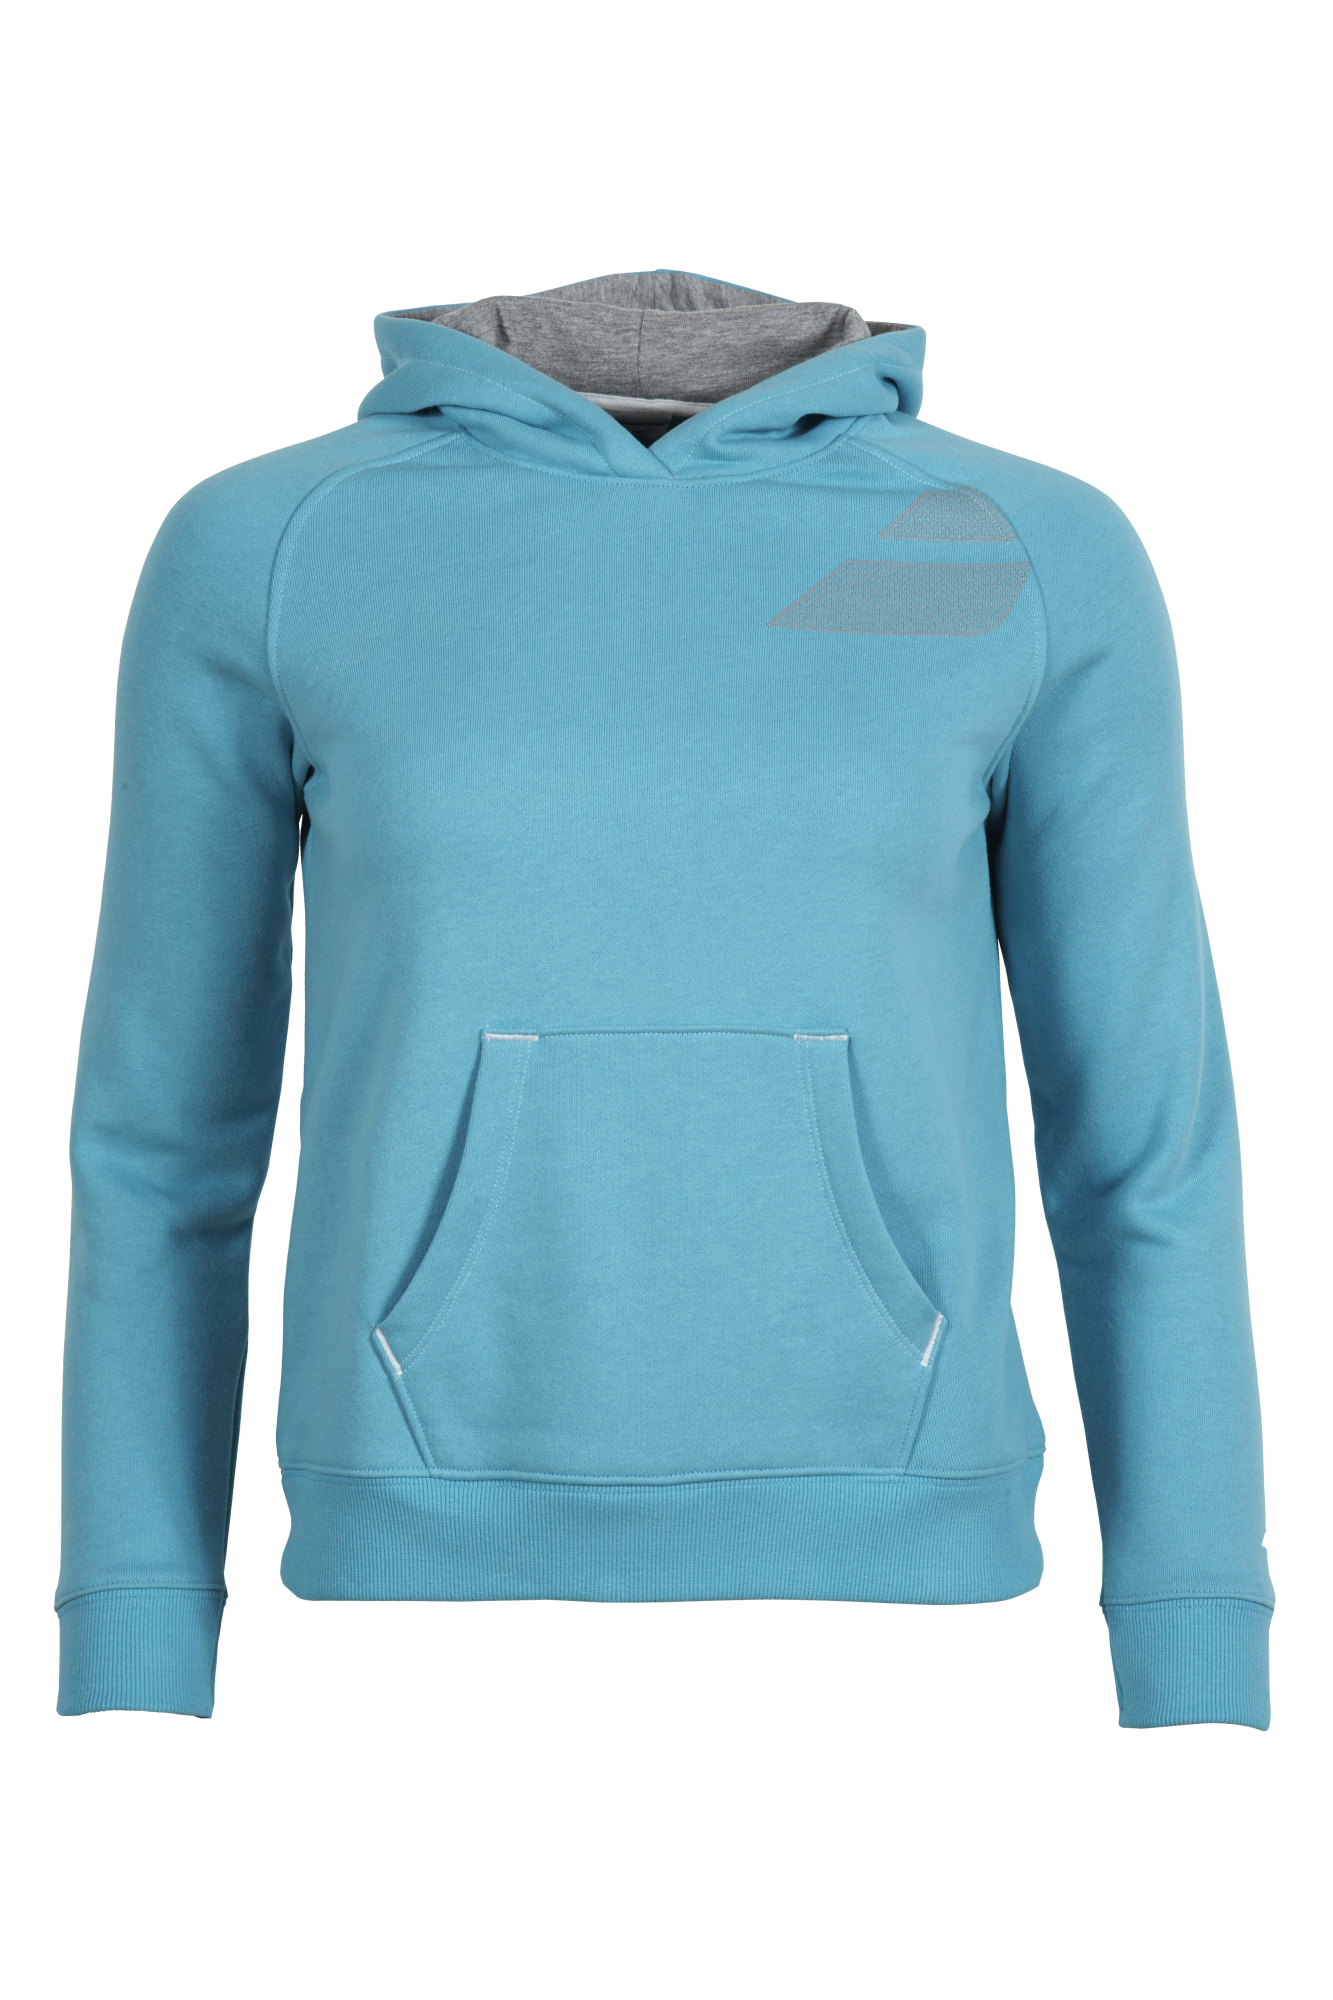 Babolat Sweat Training Girl Turquoise 2015 164